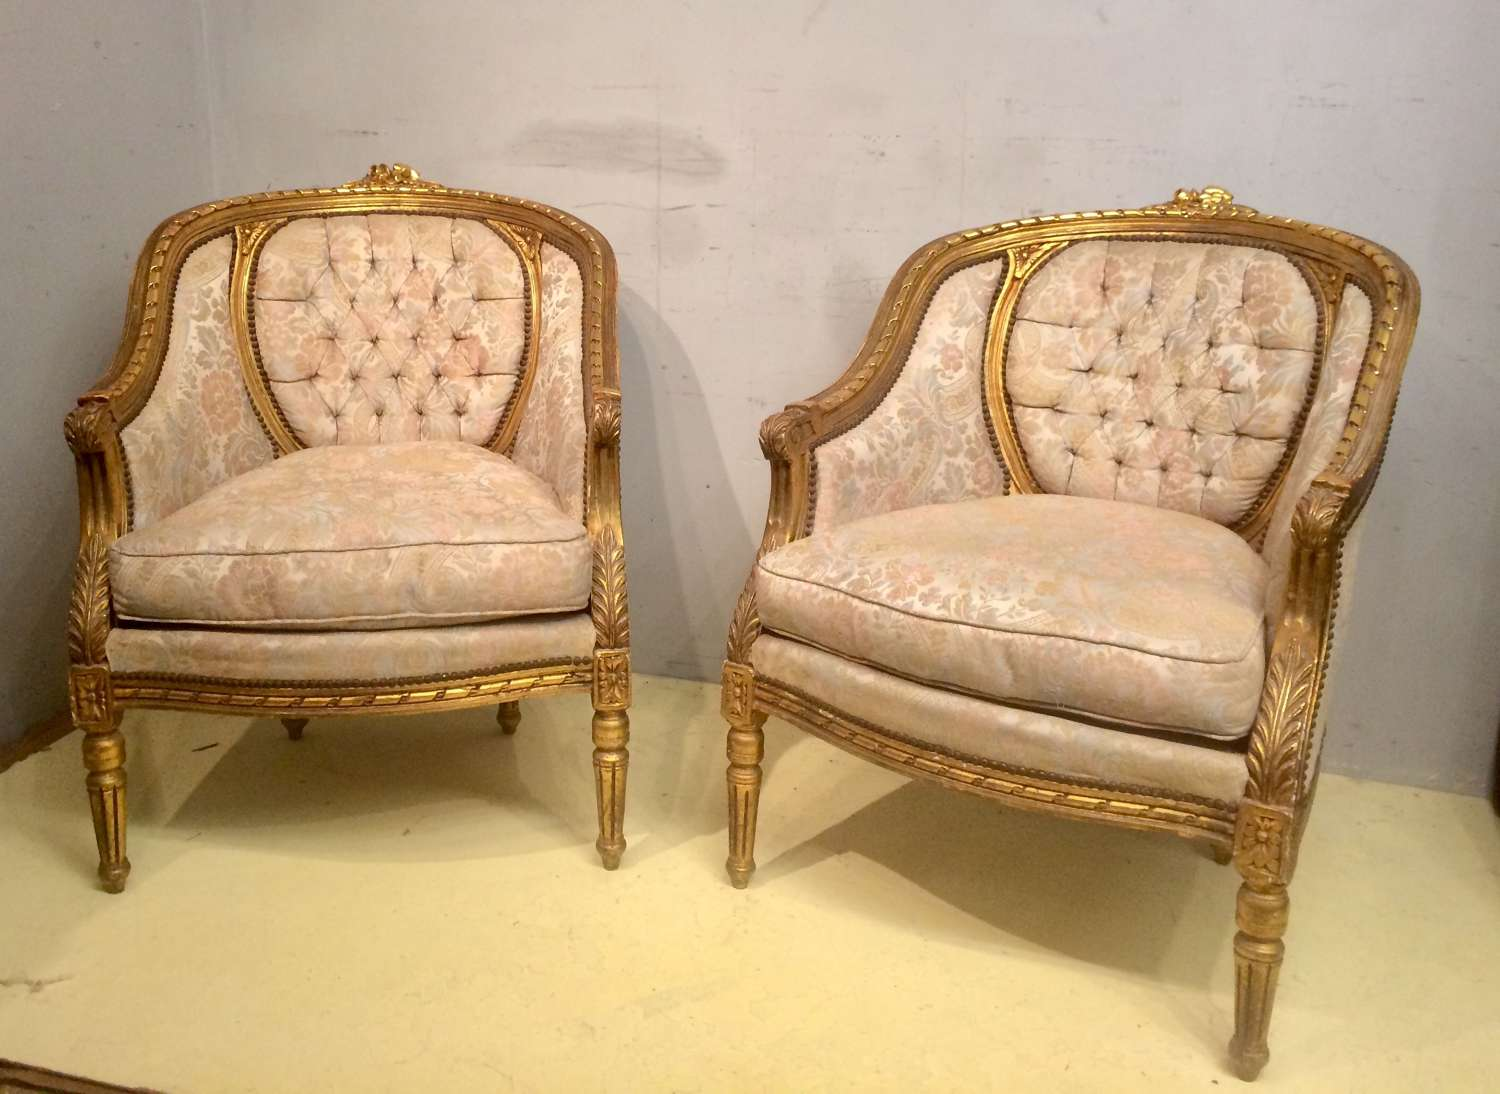 A pair of carved giltwood tub chairs in the French style.